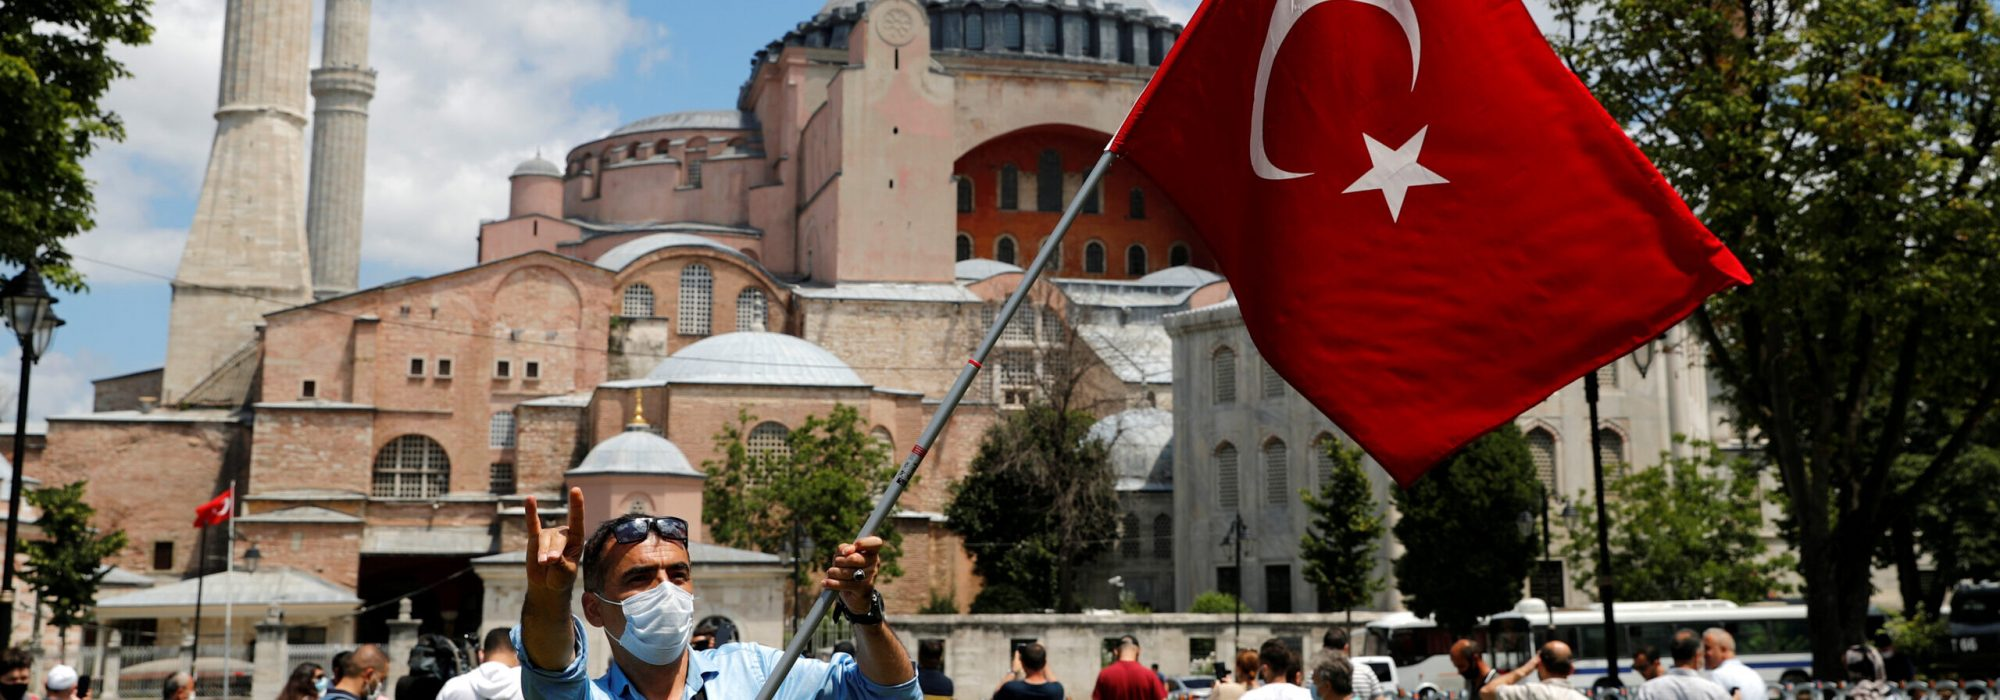 A man waves a Turkish flag as he makes the nationalist grey wolf sign in front of the Hagia Sophia or Ayasofya-i Kebir Camii in Istanbul, Turkey, July 17, 2020.,Image: 544183014, License: Rights-managed, Restrictions: , Model Release: no, Credit line: MURAD SEZER / Reuters / Forum